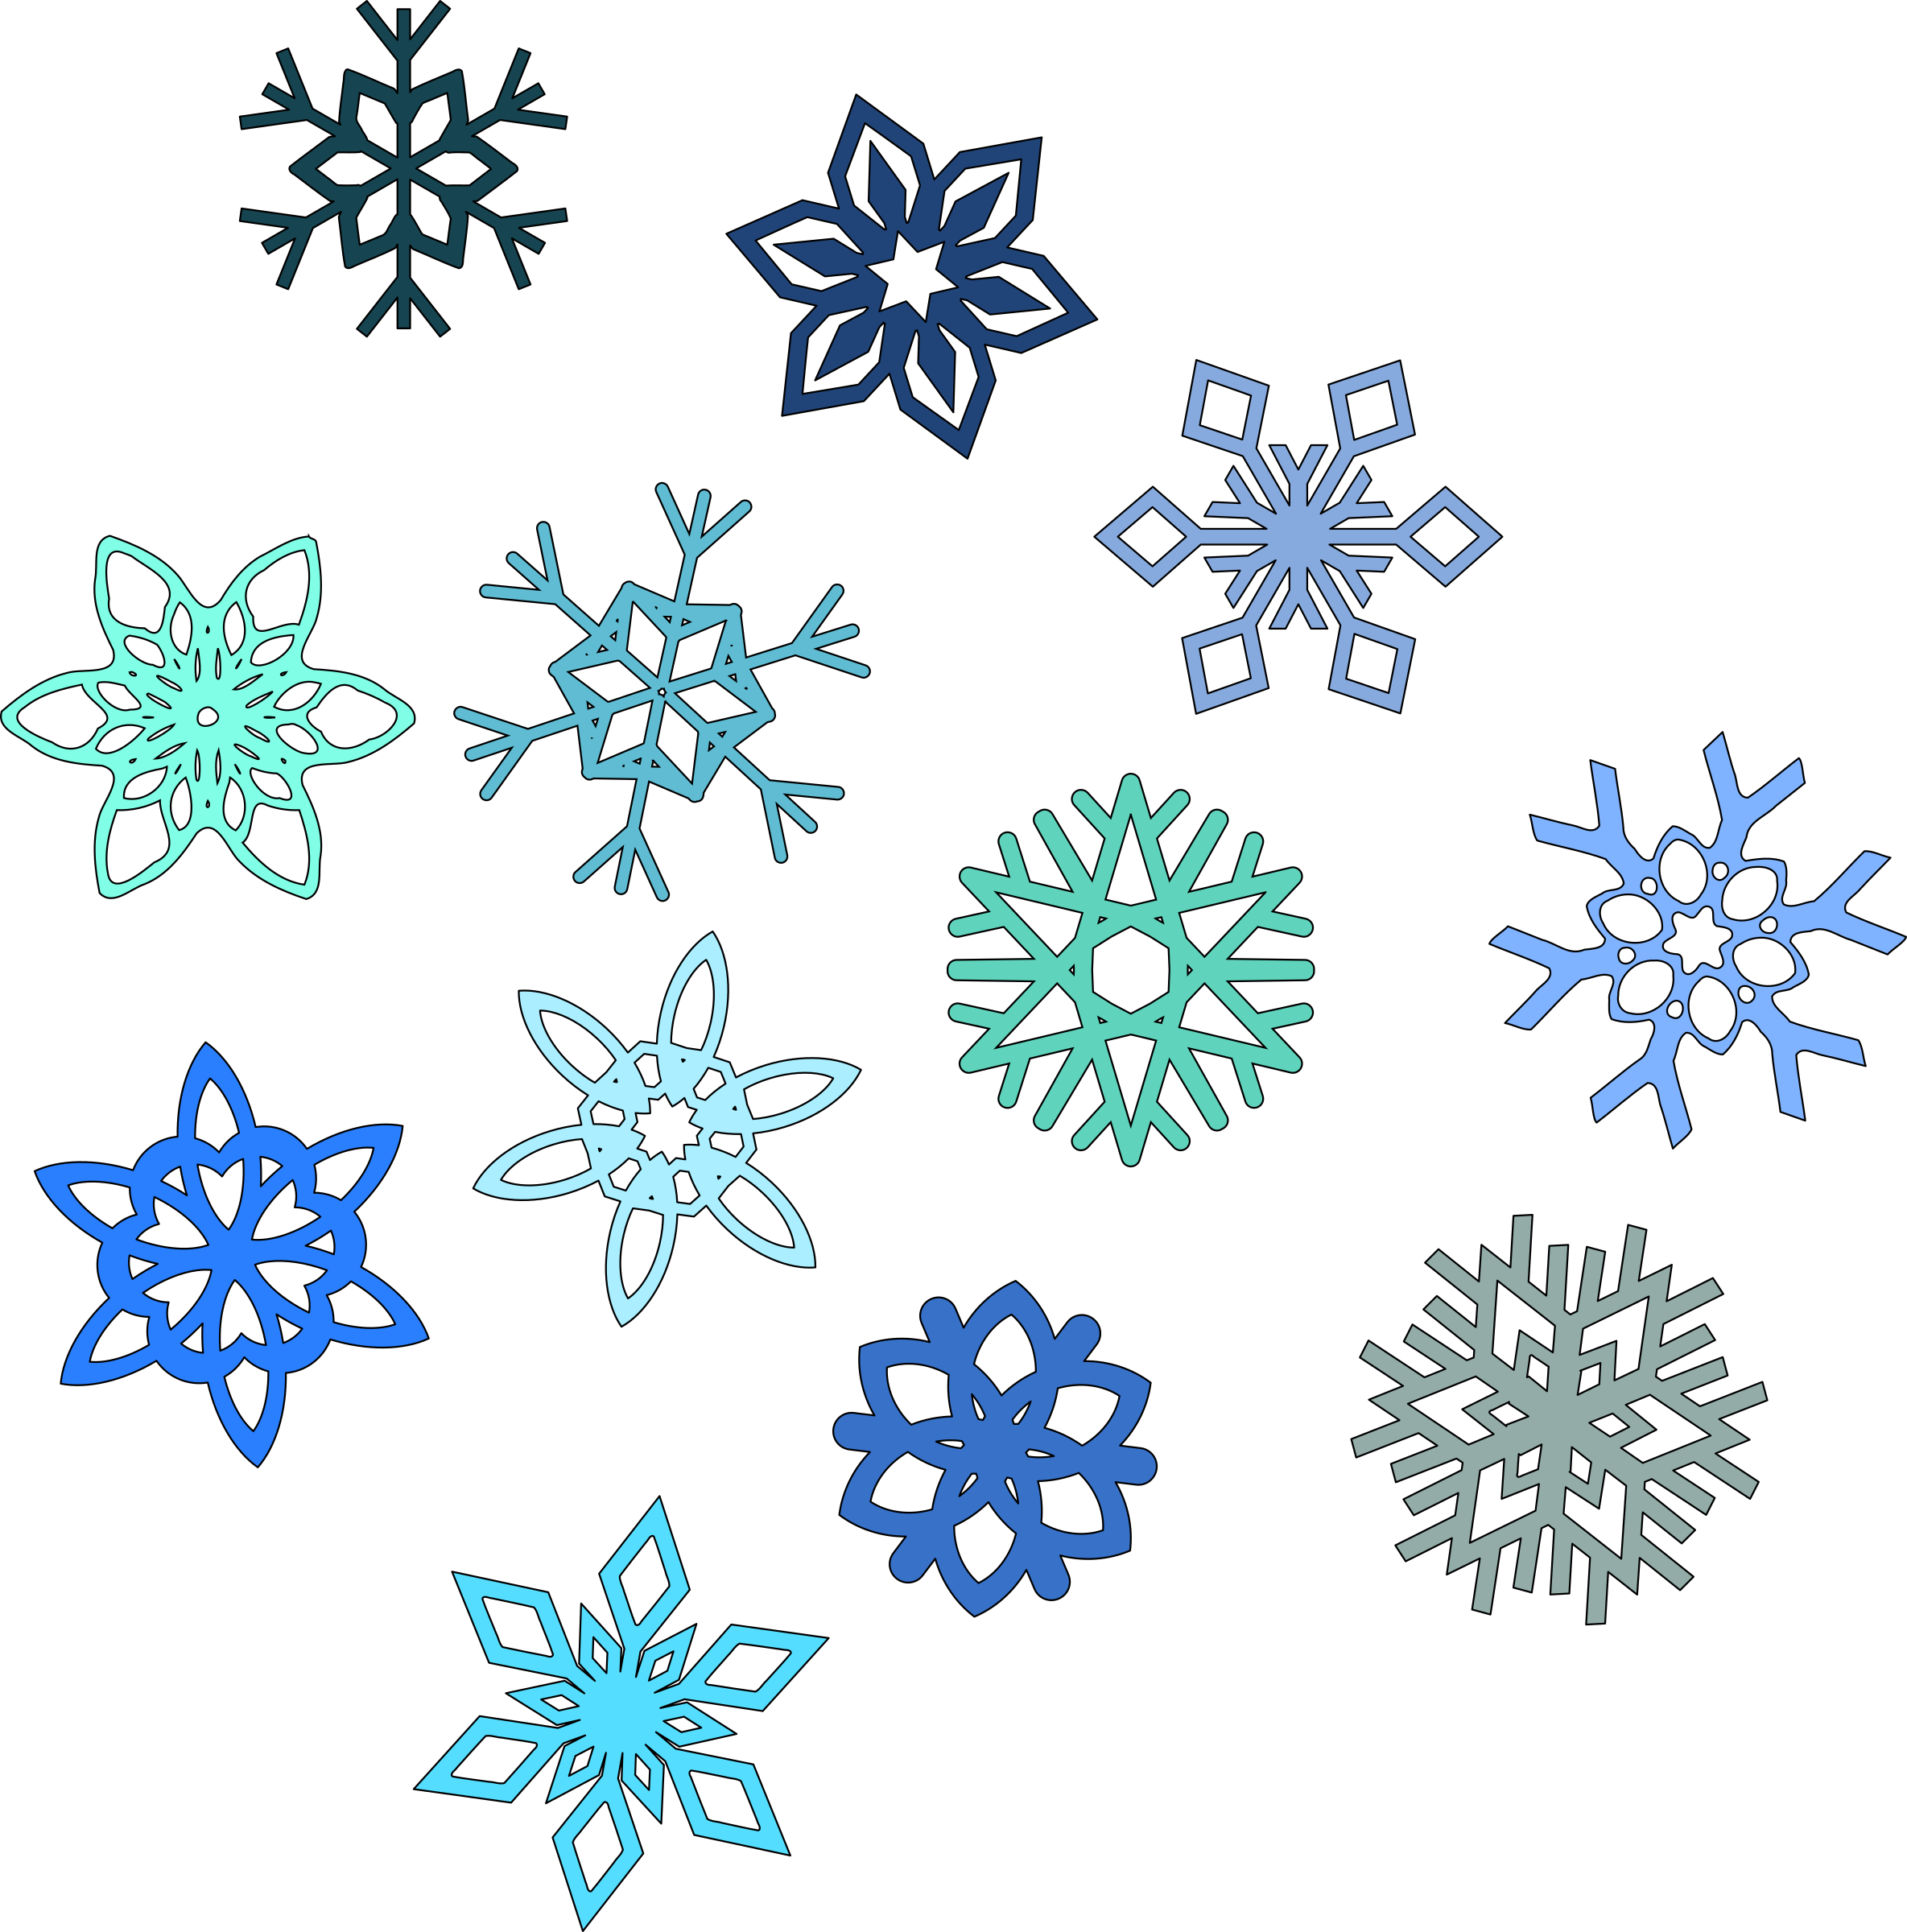 Full clipart snowflake banner freeuse download Keeping a Snow Journal | Pinterest | Scrapbooking banner freeuse download